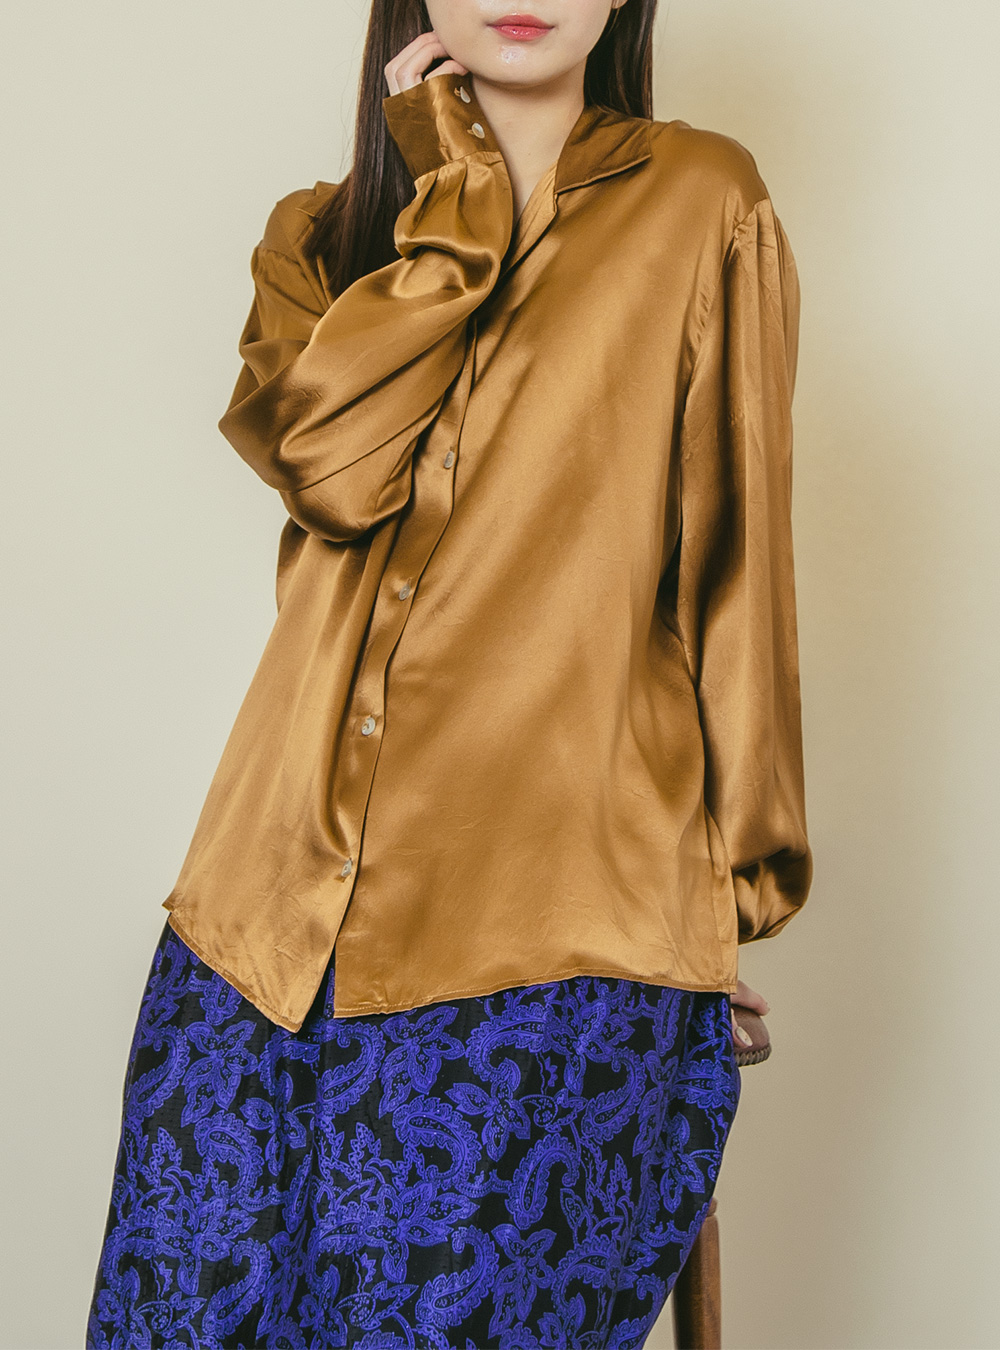 1970's Camel Brown Satin Blouse